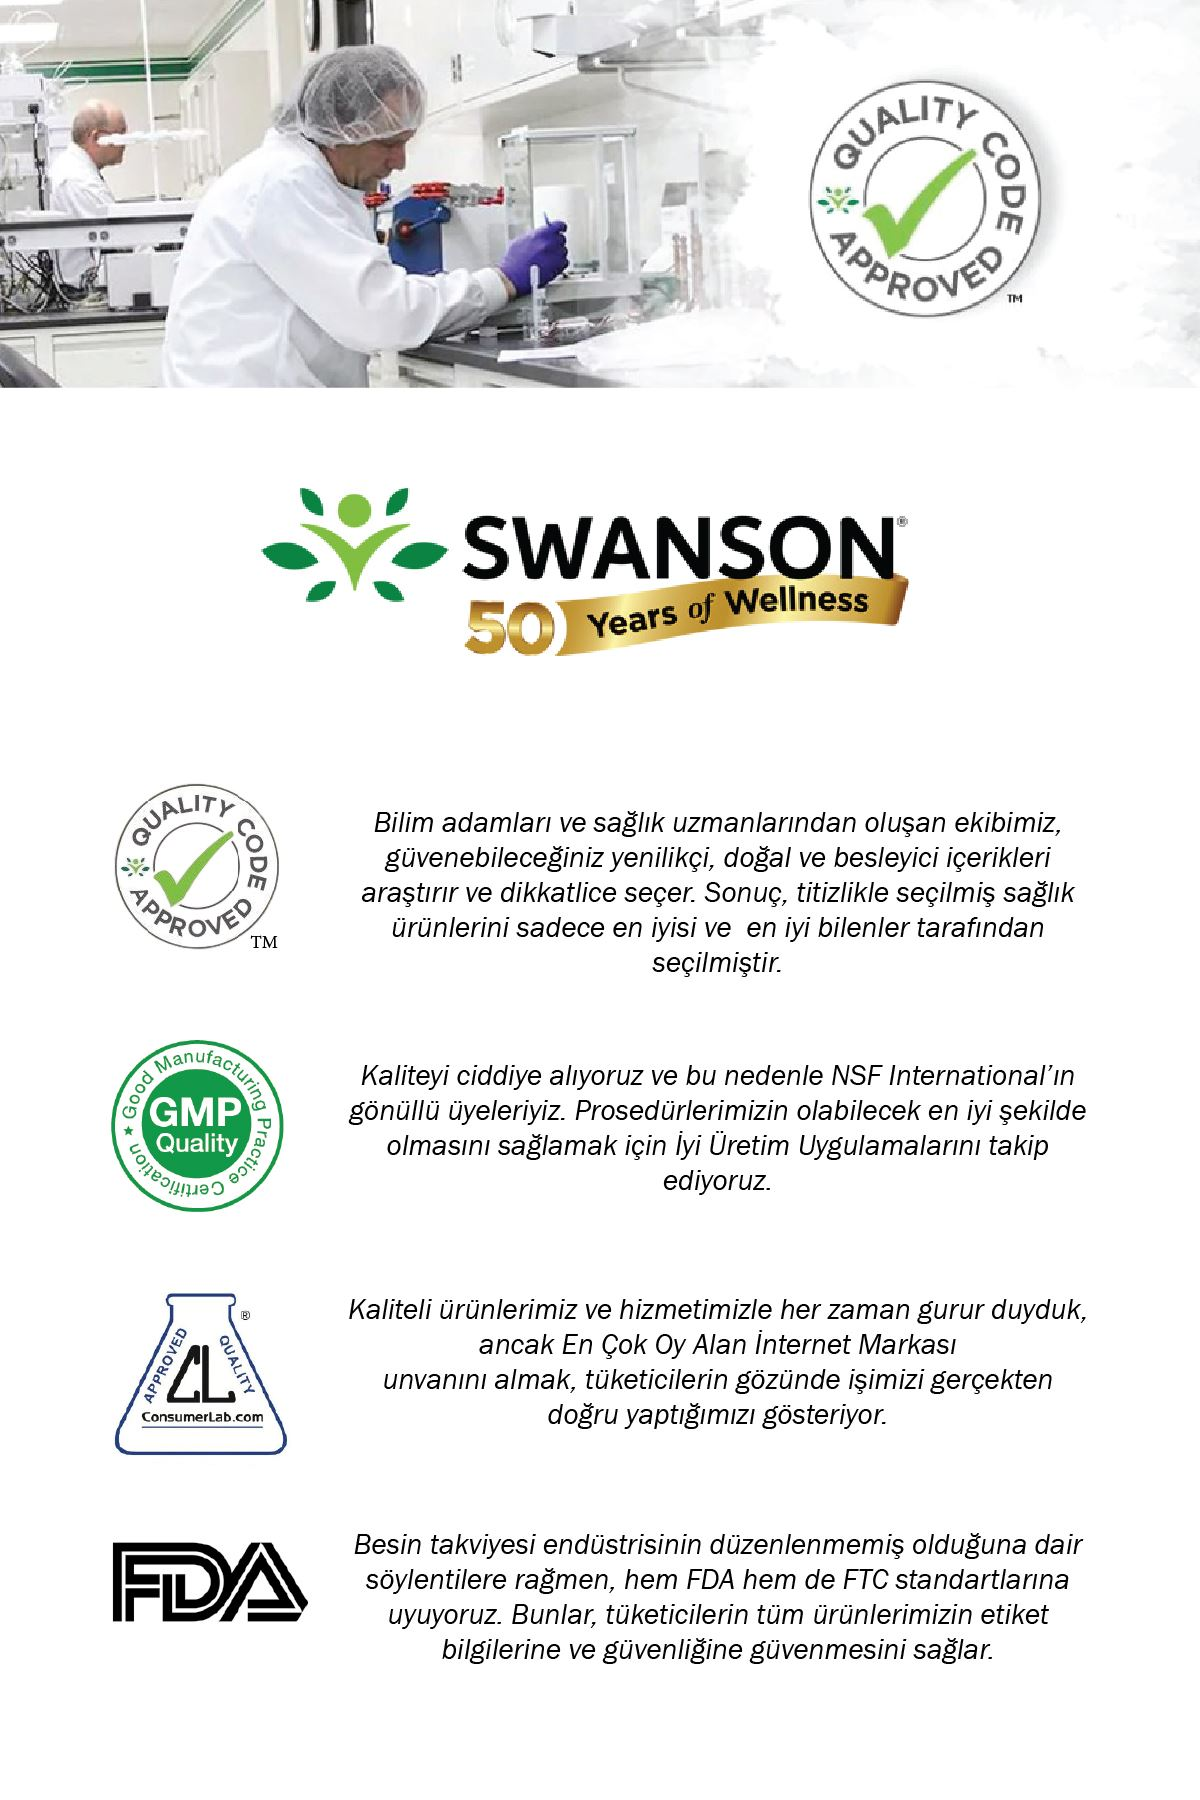 Swanson Probiotic for Daily Wellness